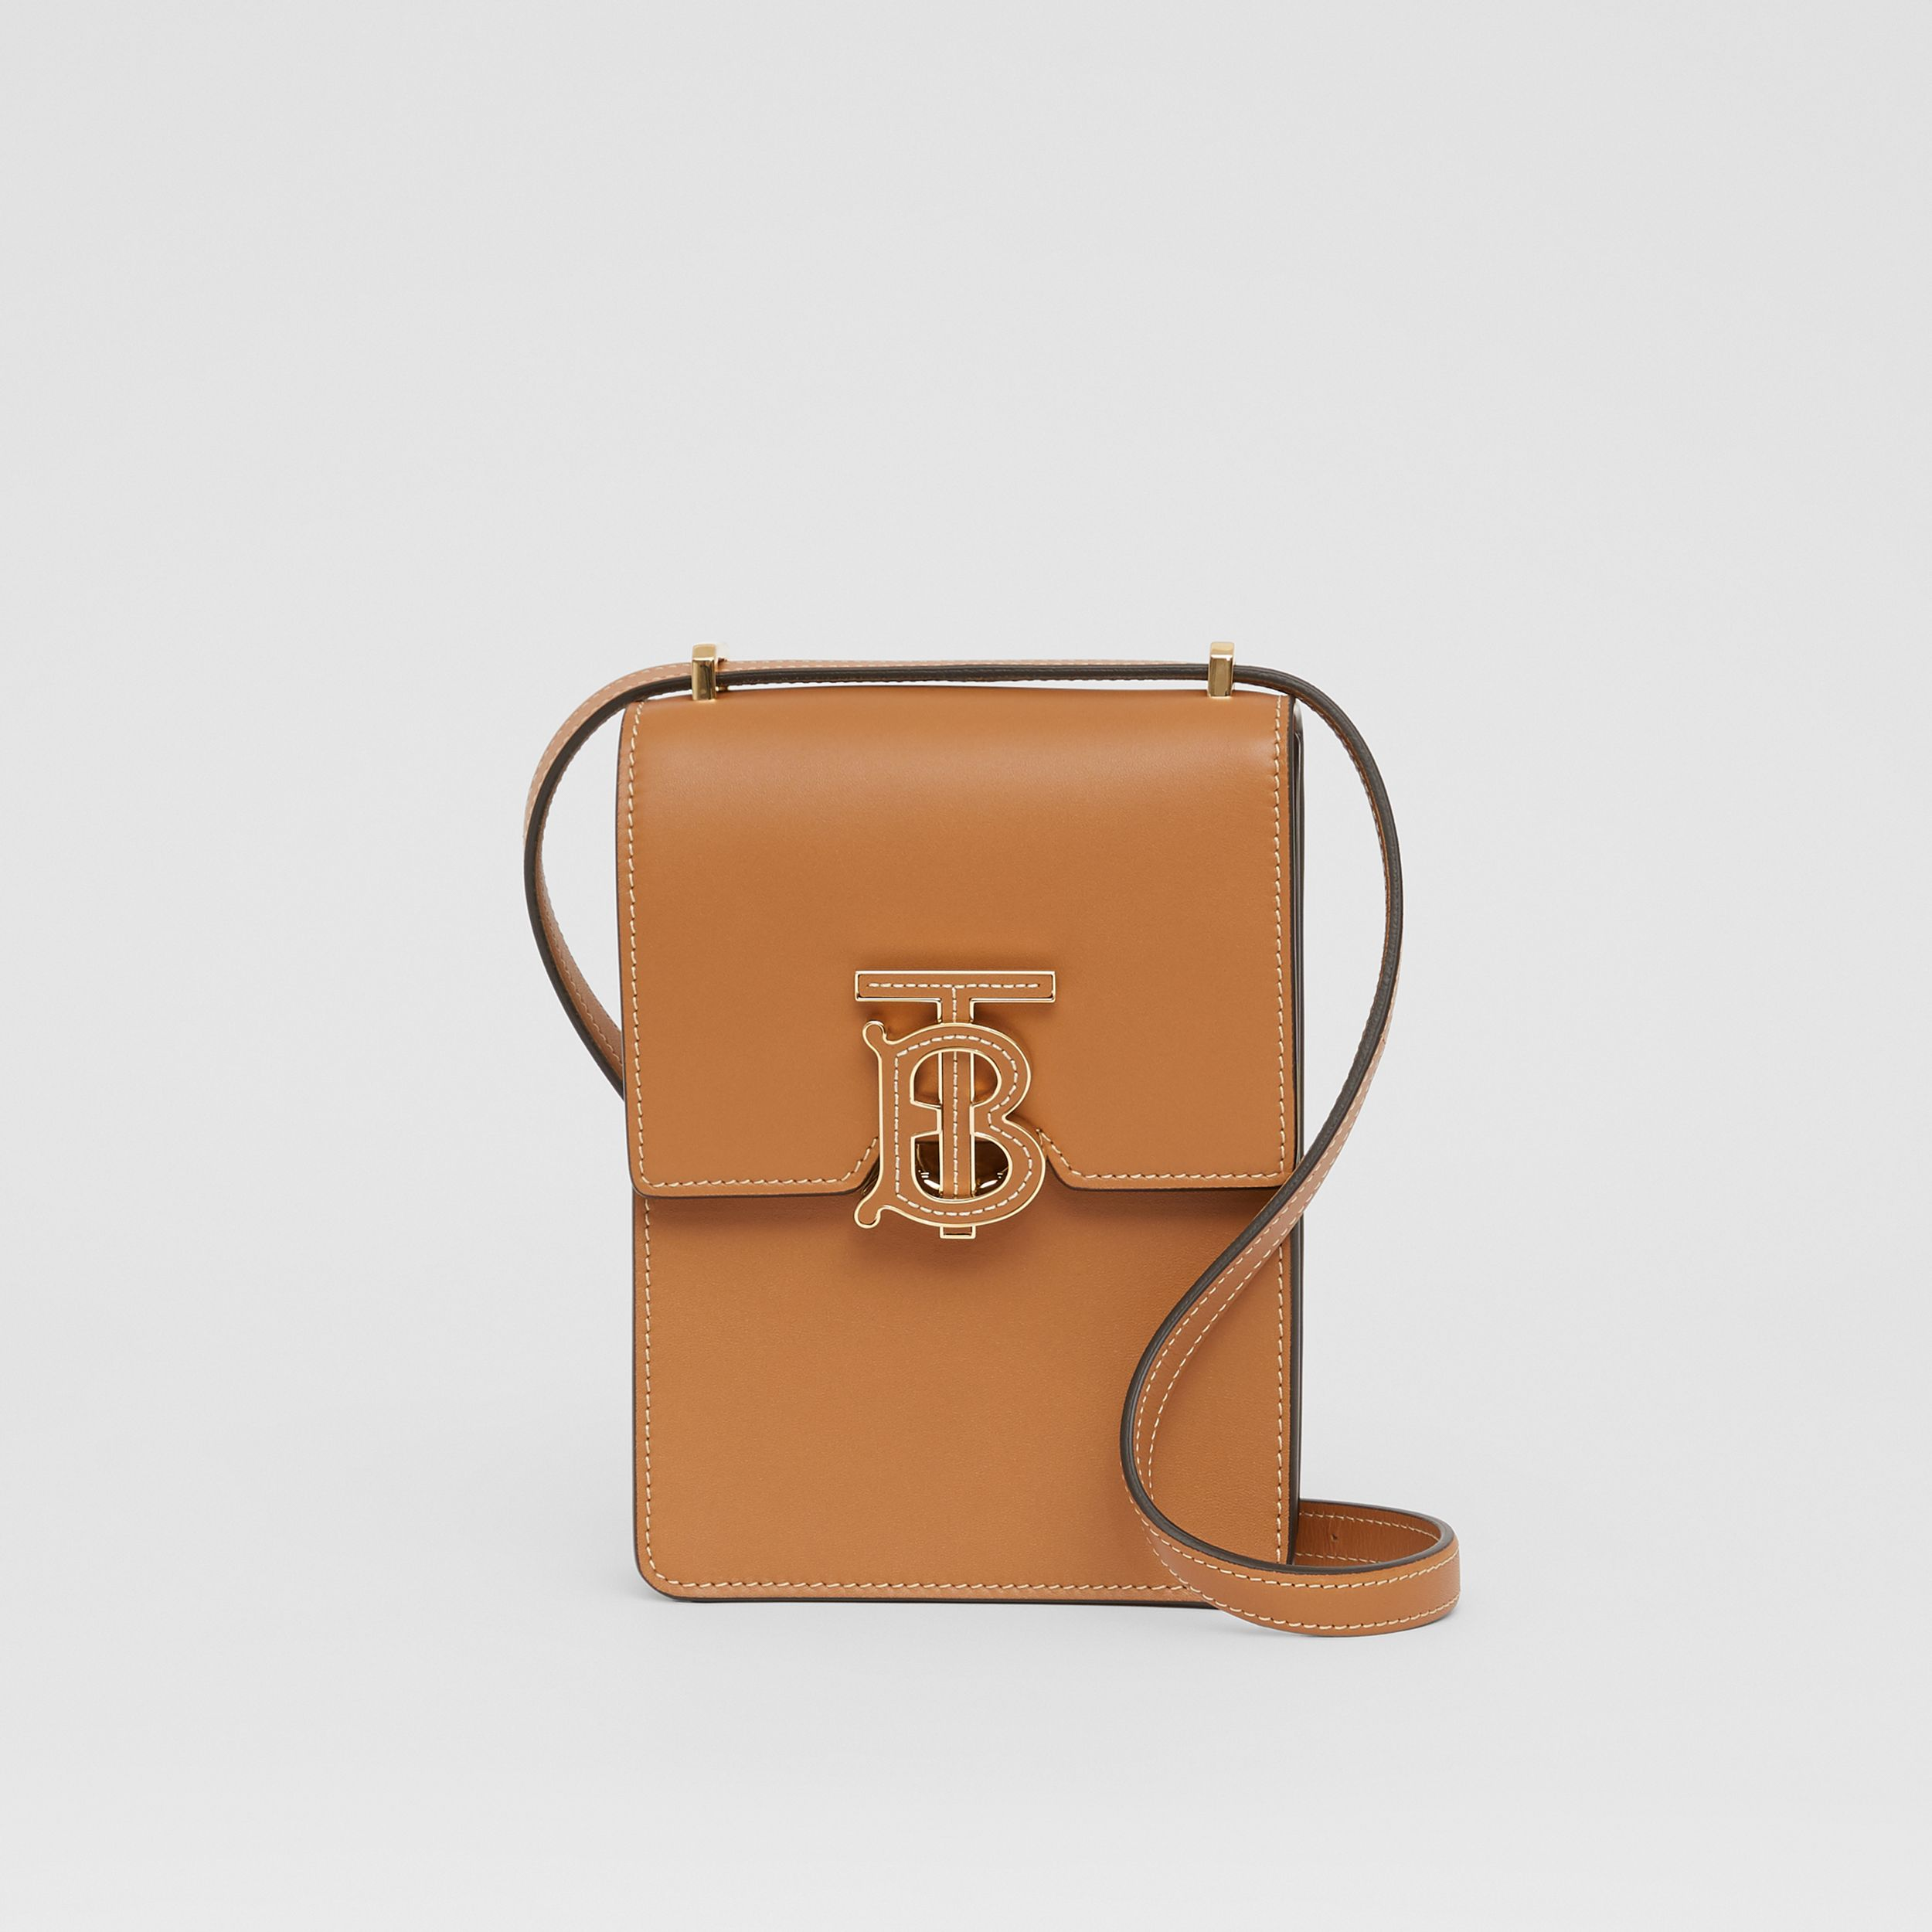 Topstitched Leather Robin Bag in Maple Brown - Women | Burberry - 1